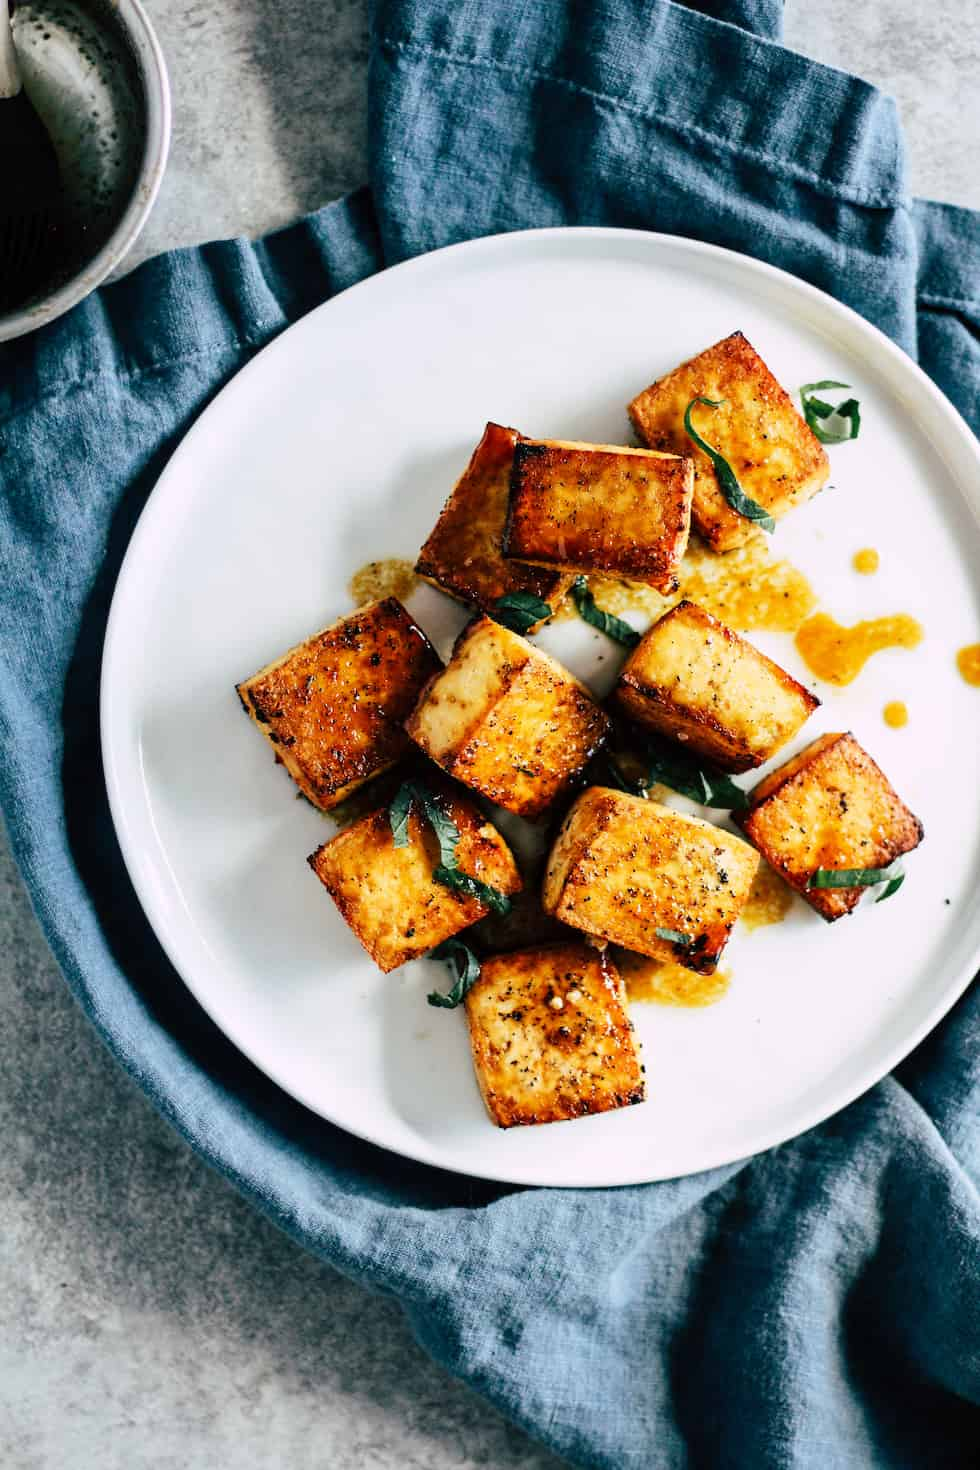 Browned tofu on white plate with blue napkin.